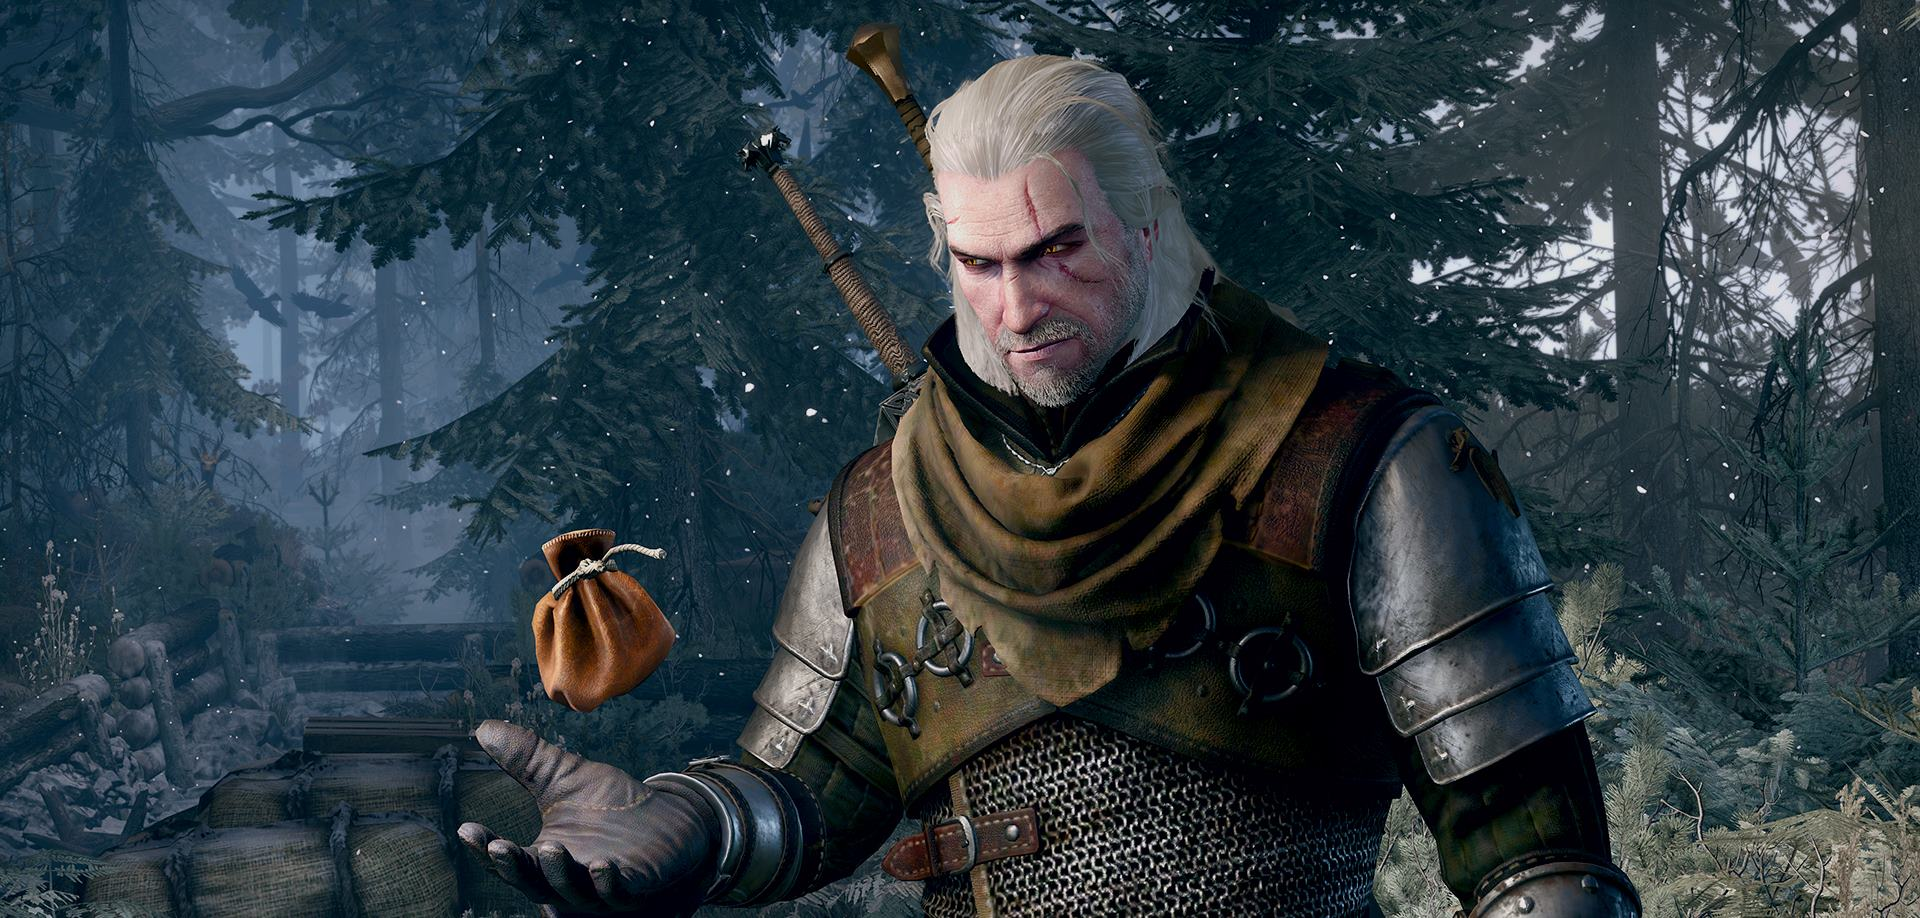 One Witcher 3 fan has a simple demand: more butts